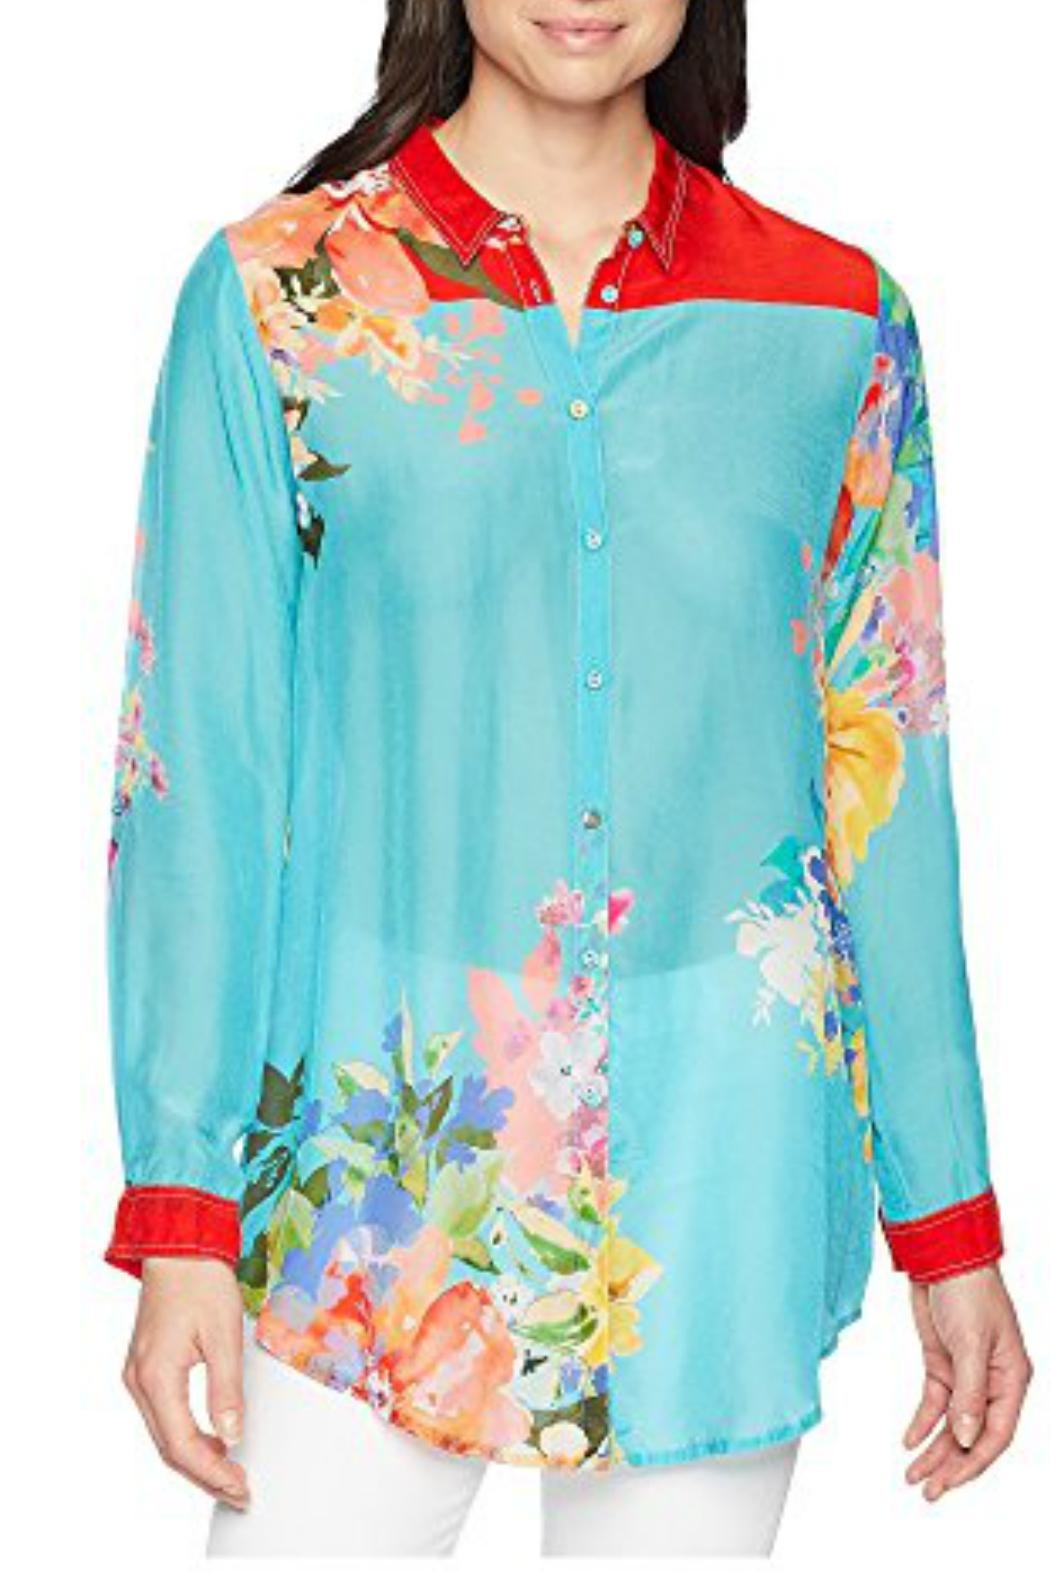 Johnny Was Tropical Print Blouse - Main Image